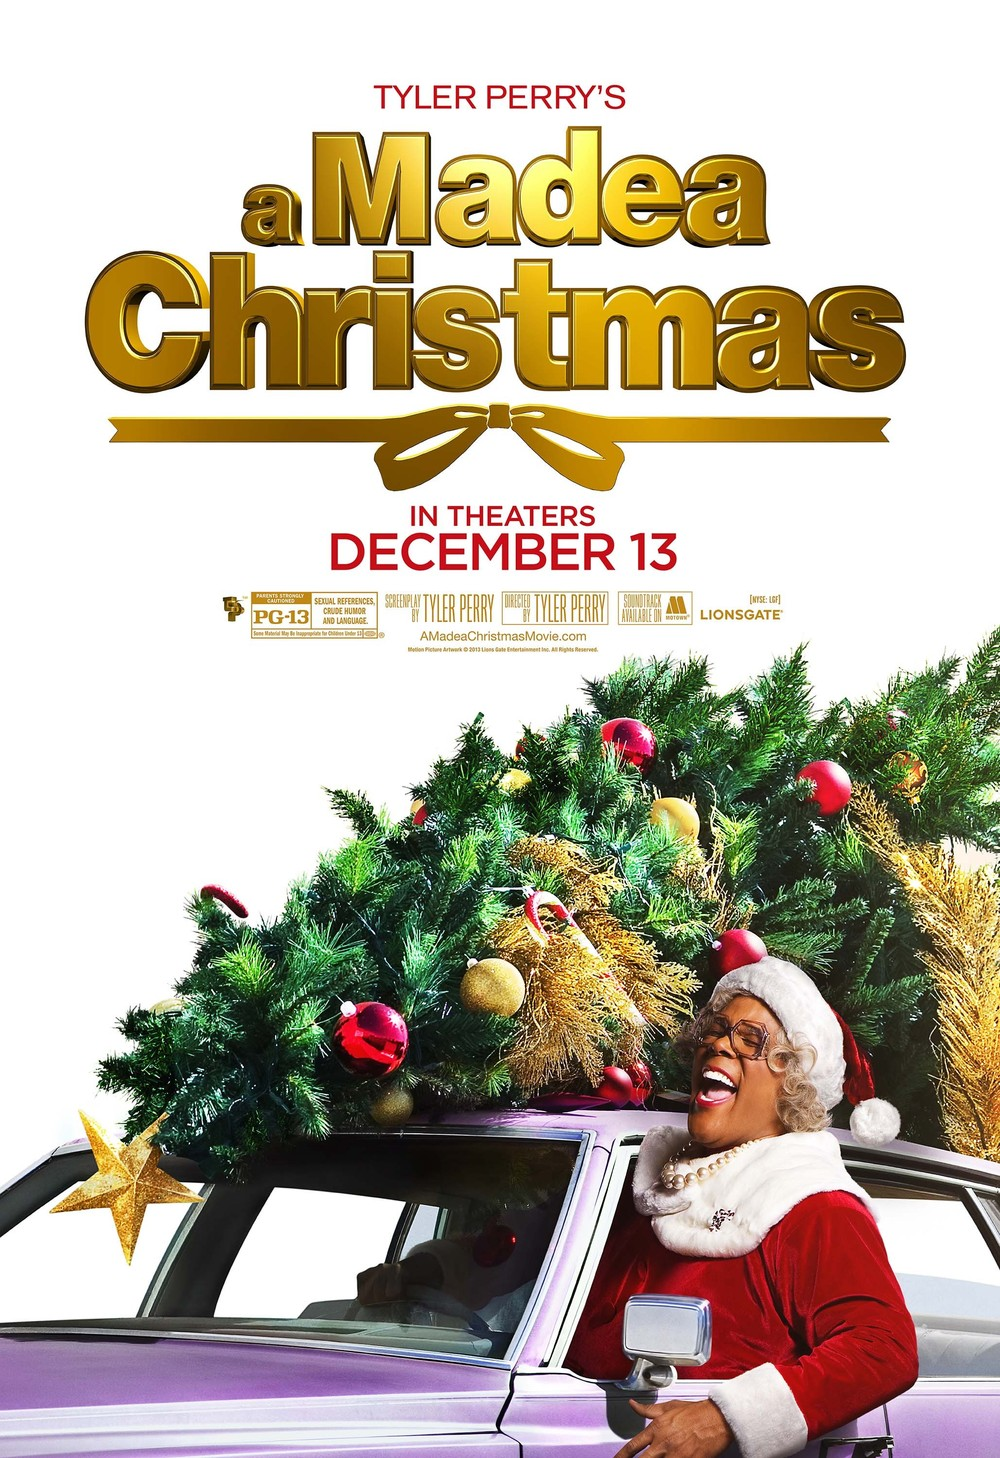 look for it on blu ray dvd digital download look for it on blu ray movies dvd a madea christmas look for it on blu ray dvd digital download